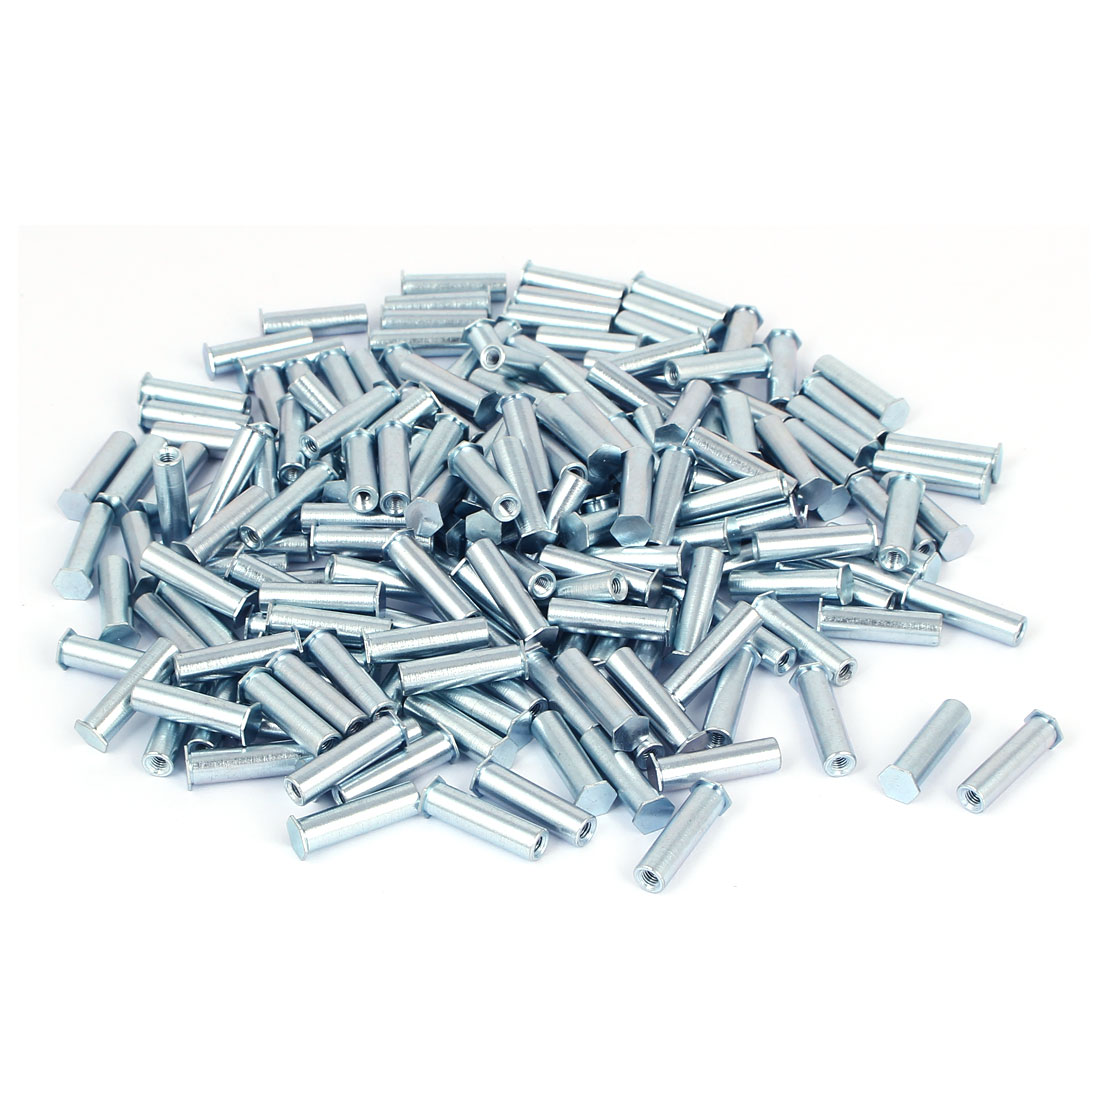 M3x20mm Blind Hole Zinc Plated Carbon Steel Self Clinching Standoff 200pcs